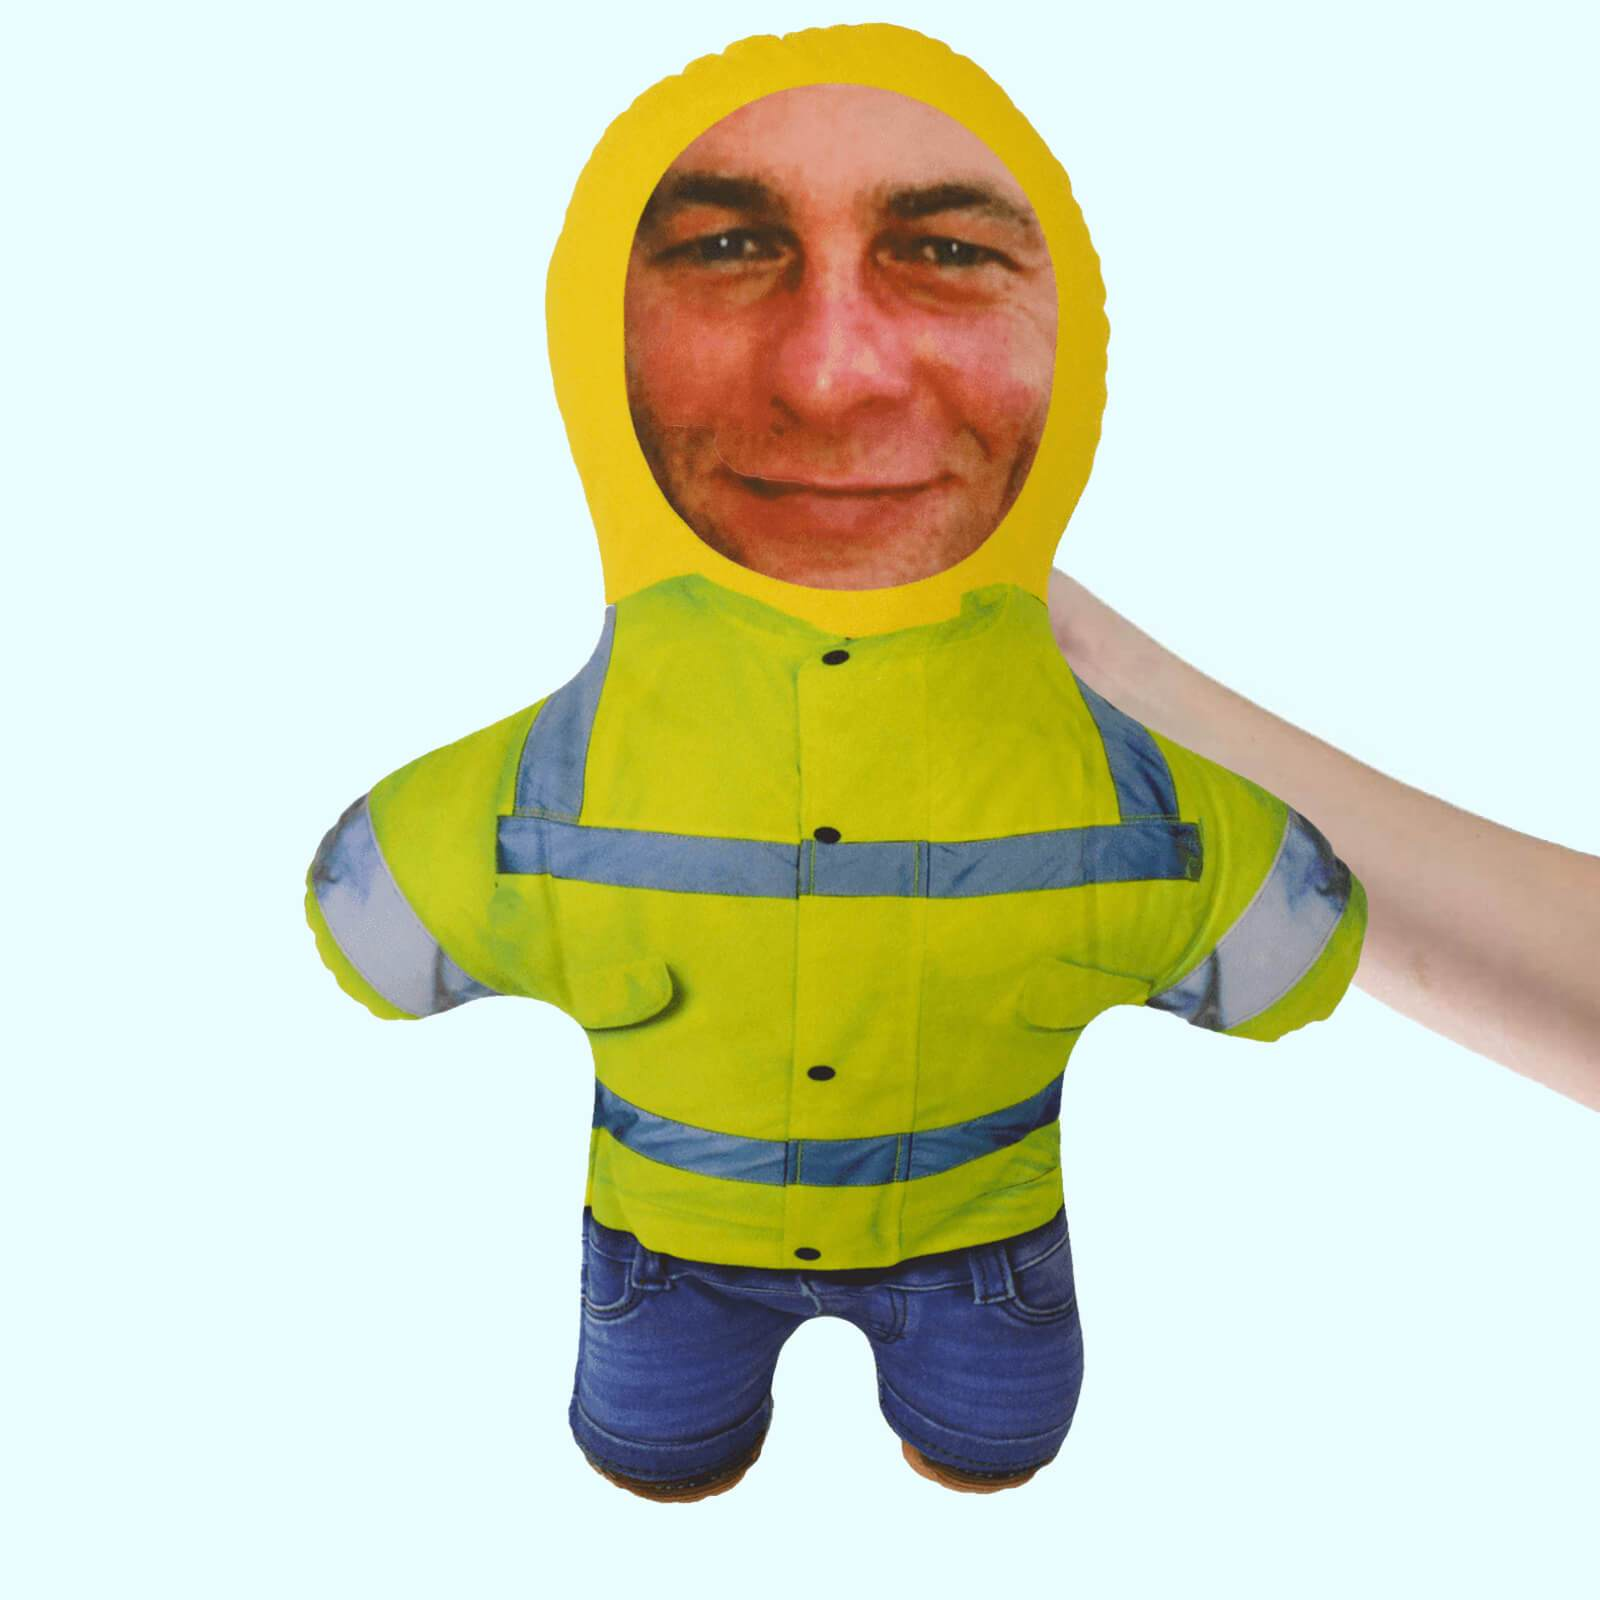 Mini MeHi-vis